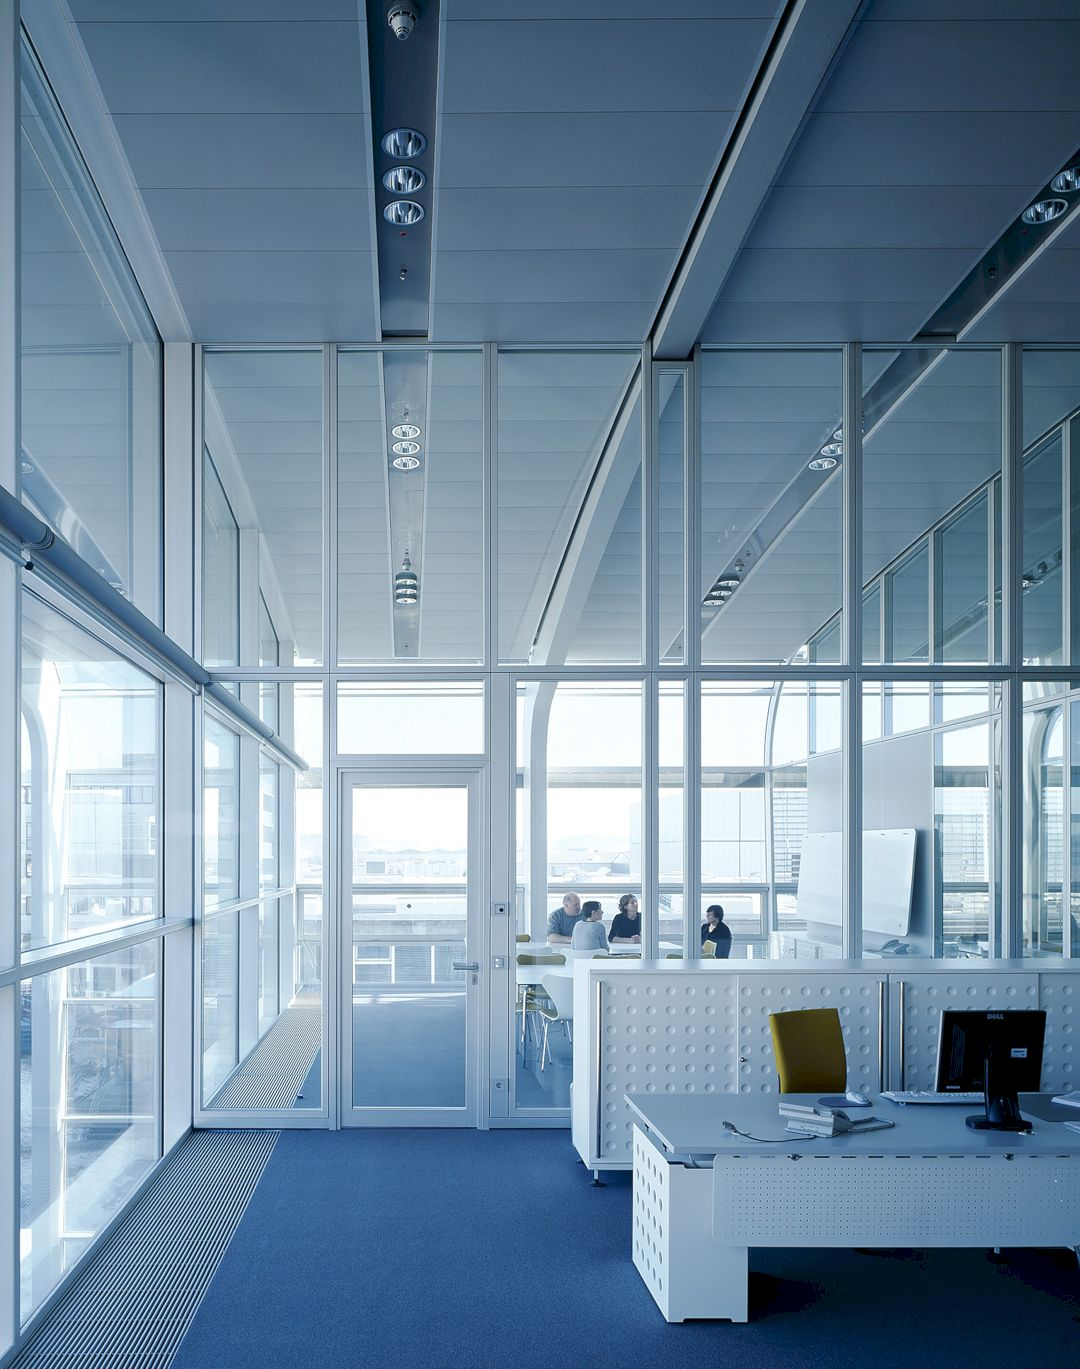 Gira Production Building By Ingenhoven Architects 11